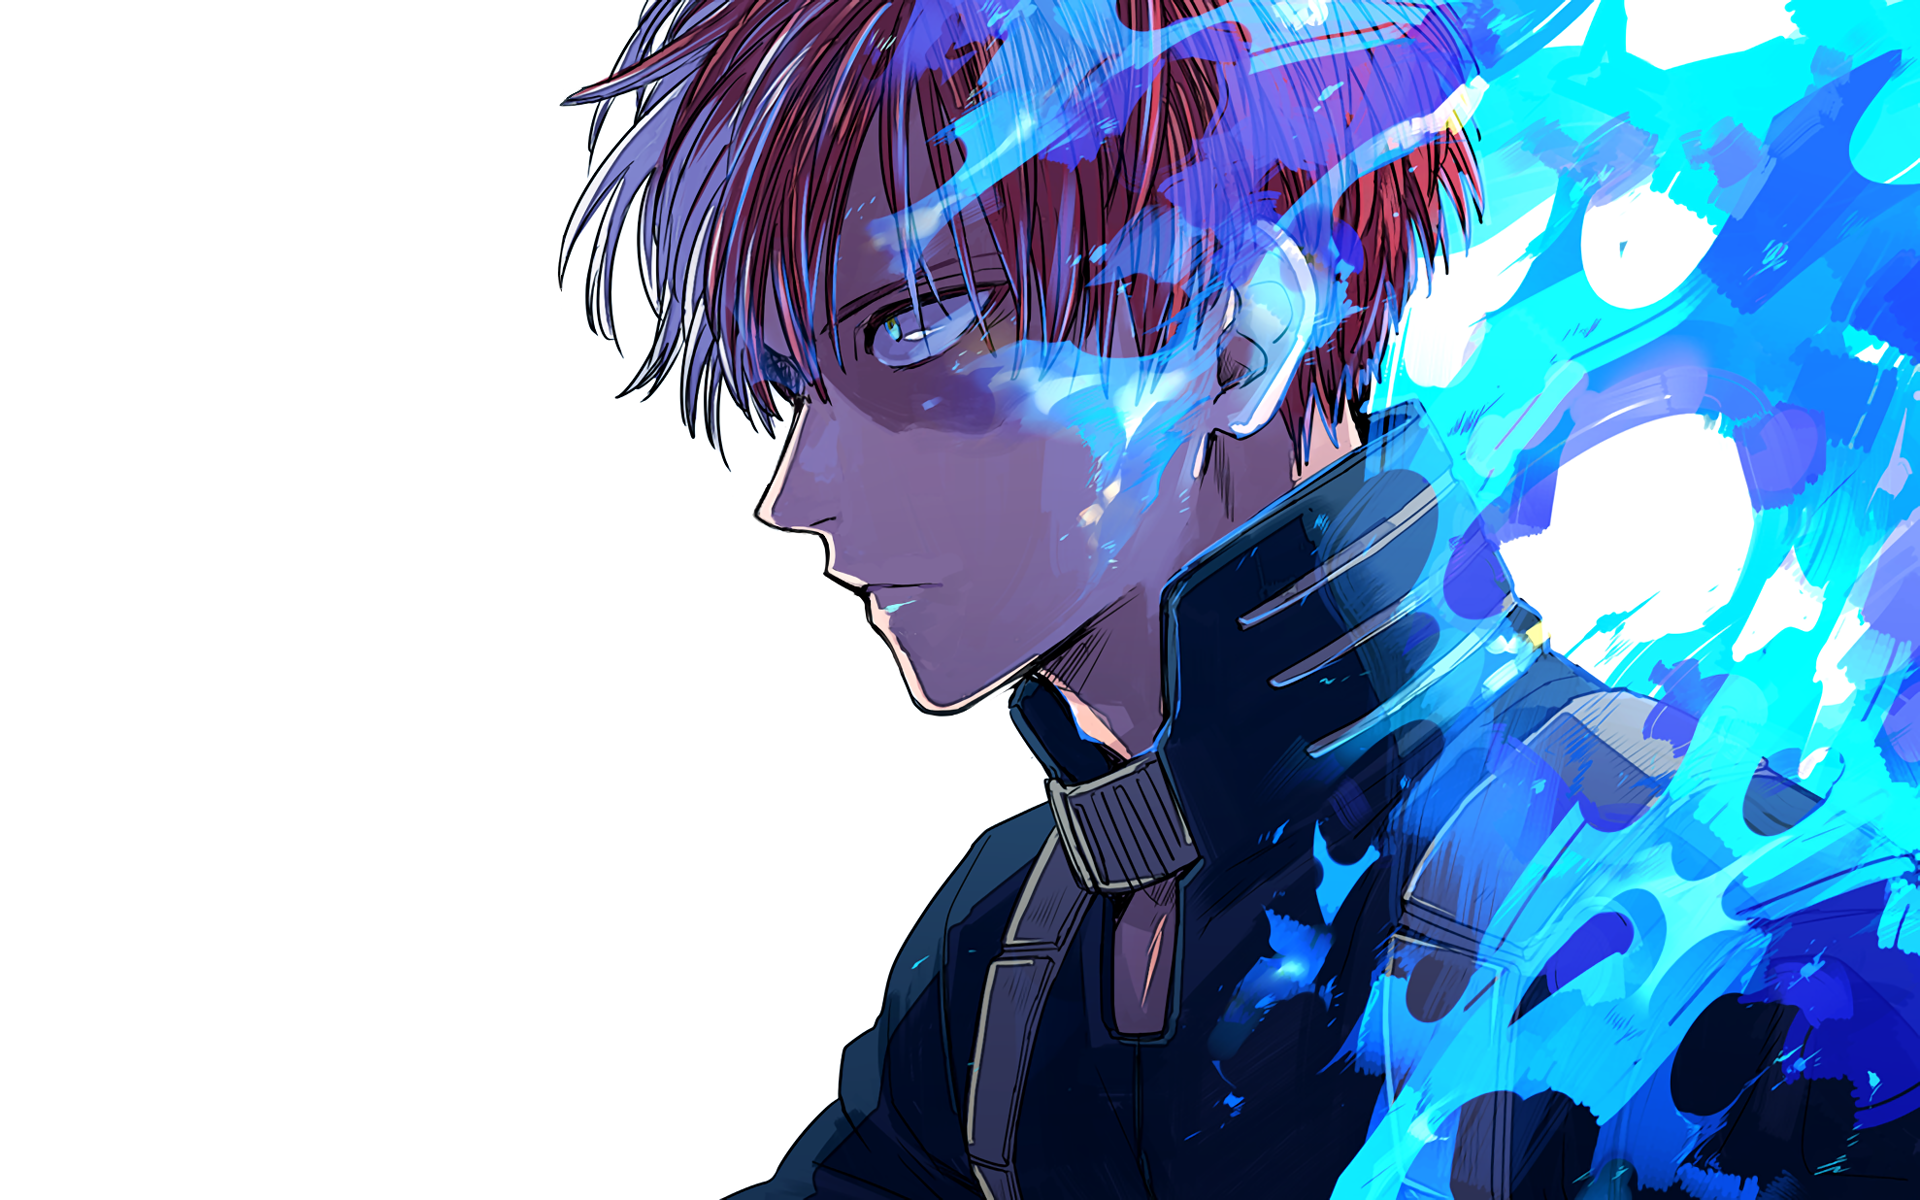 Anime Boy Blue Desktop Wallpapers Wallpaper Cave If not, make sure you check out the other categories as well. anime boy blue desktop wallpapers